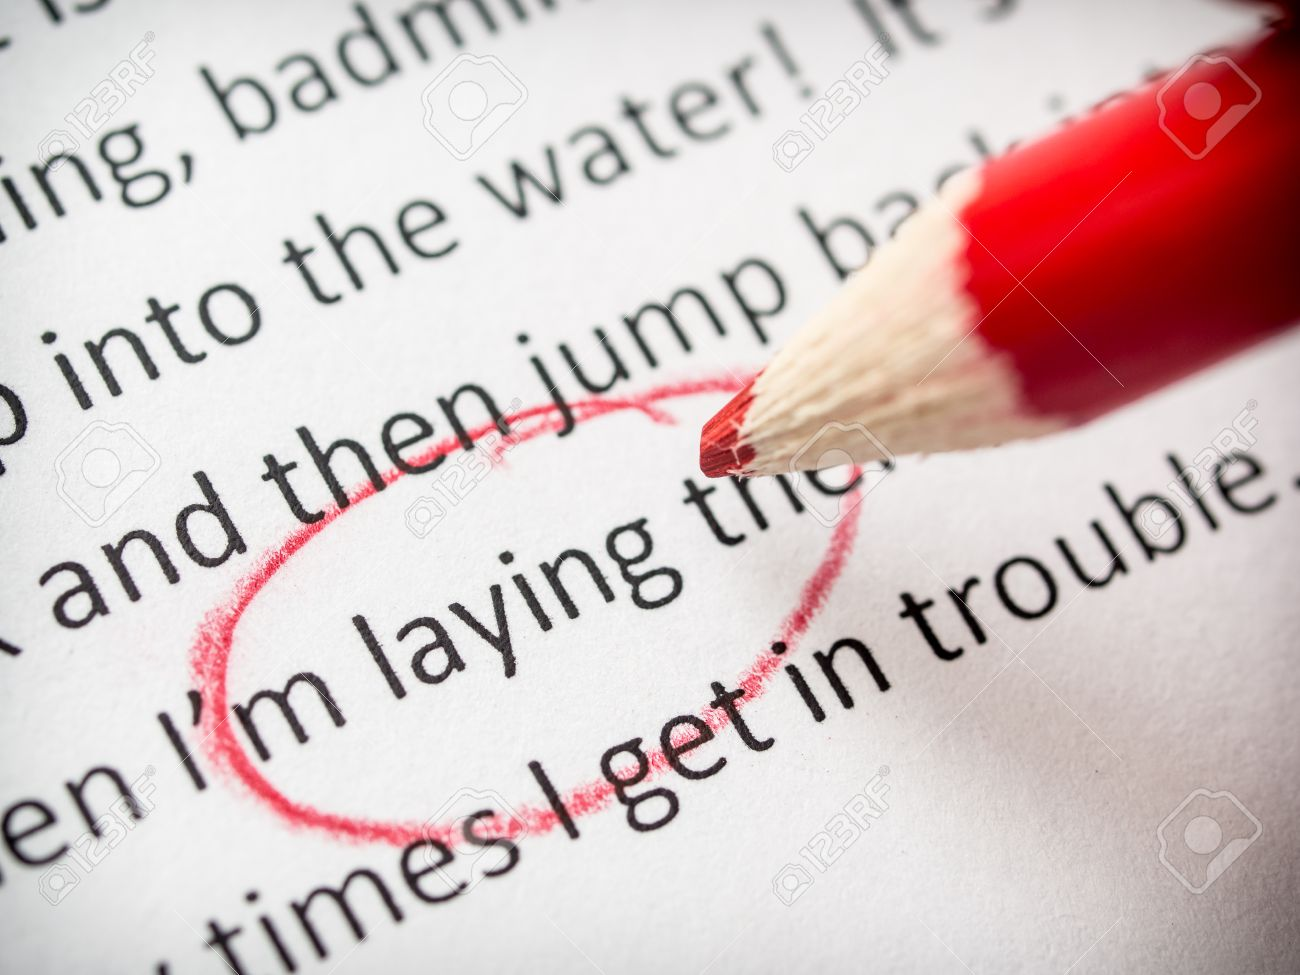 proofreading essay errors stock photo picture and royalty  proofreading essay errors stock photo 23819275